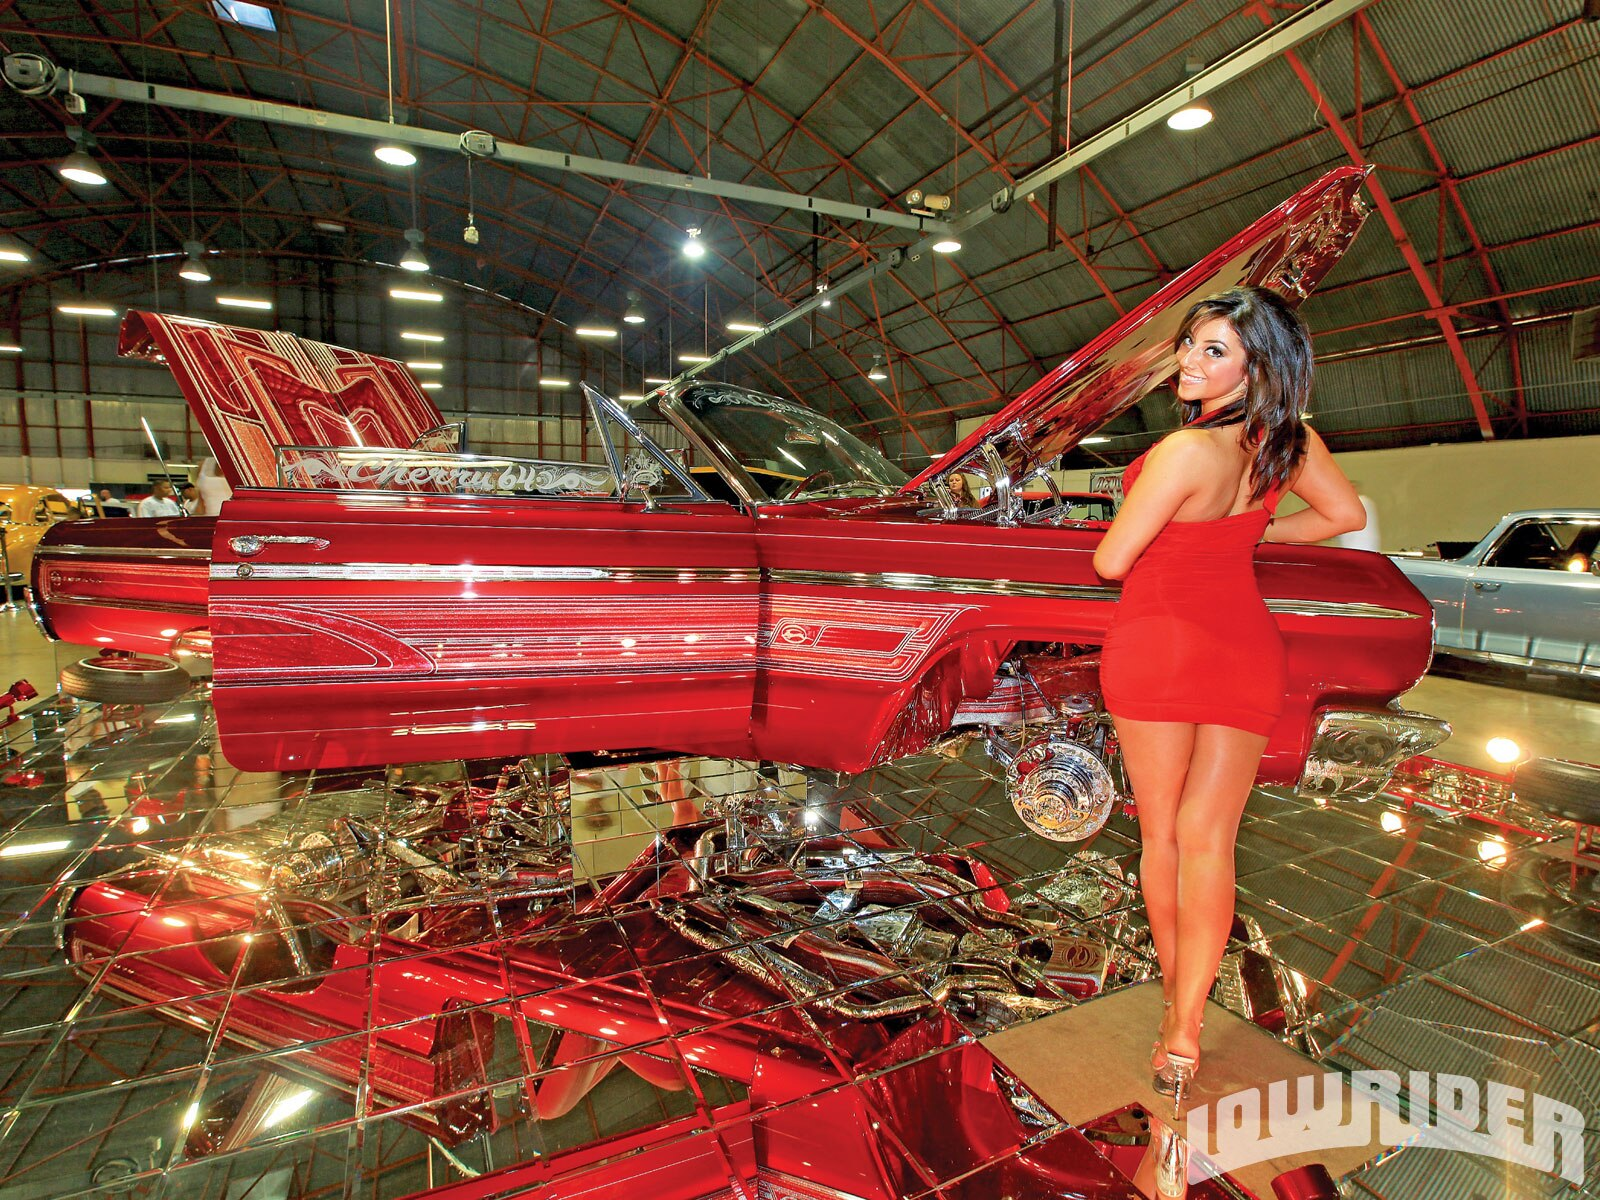 1009-lrmp-01-z-lolystics-5th-annual-super-show-model